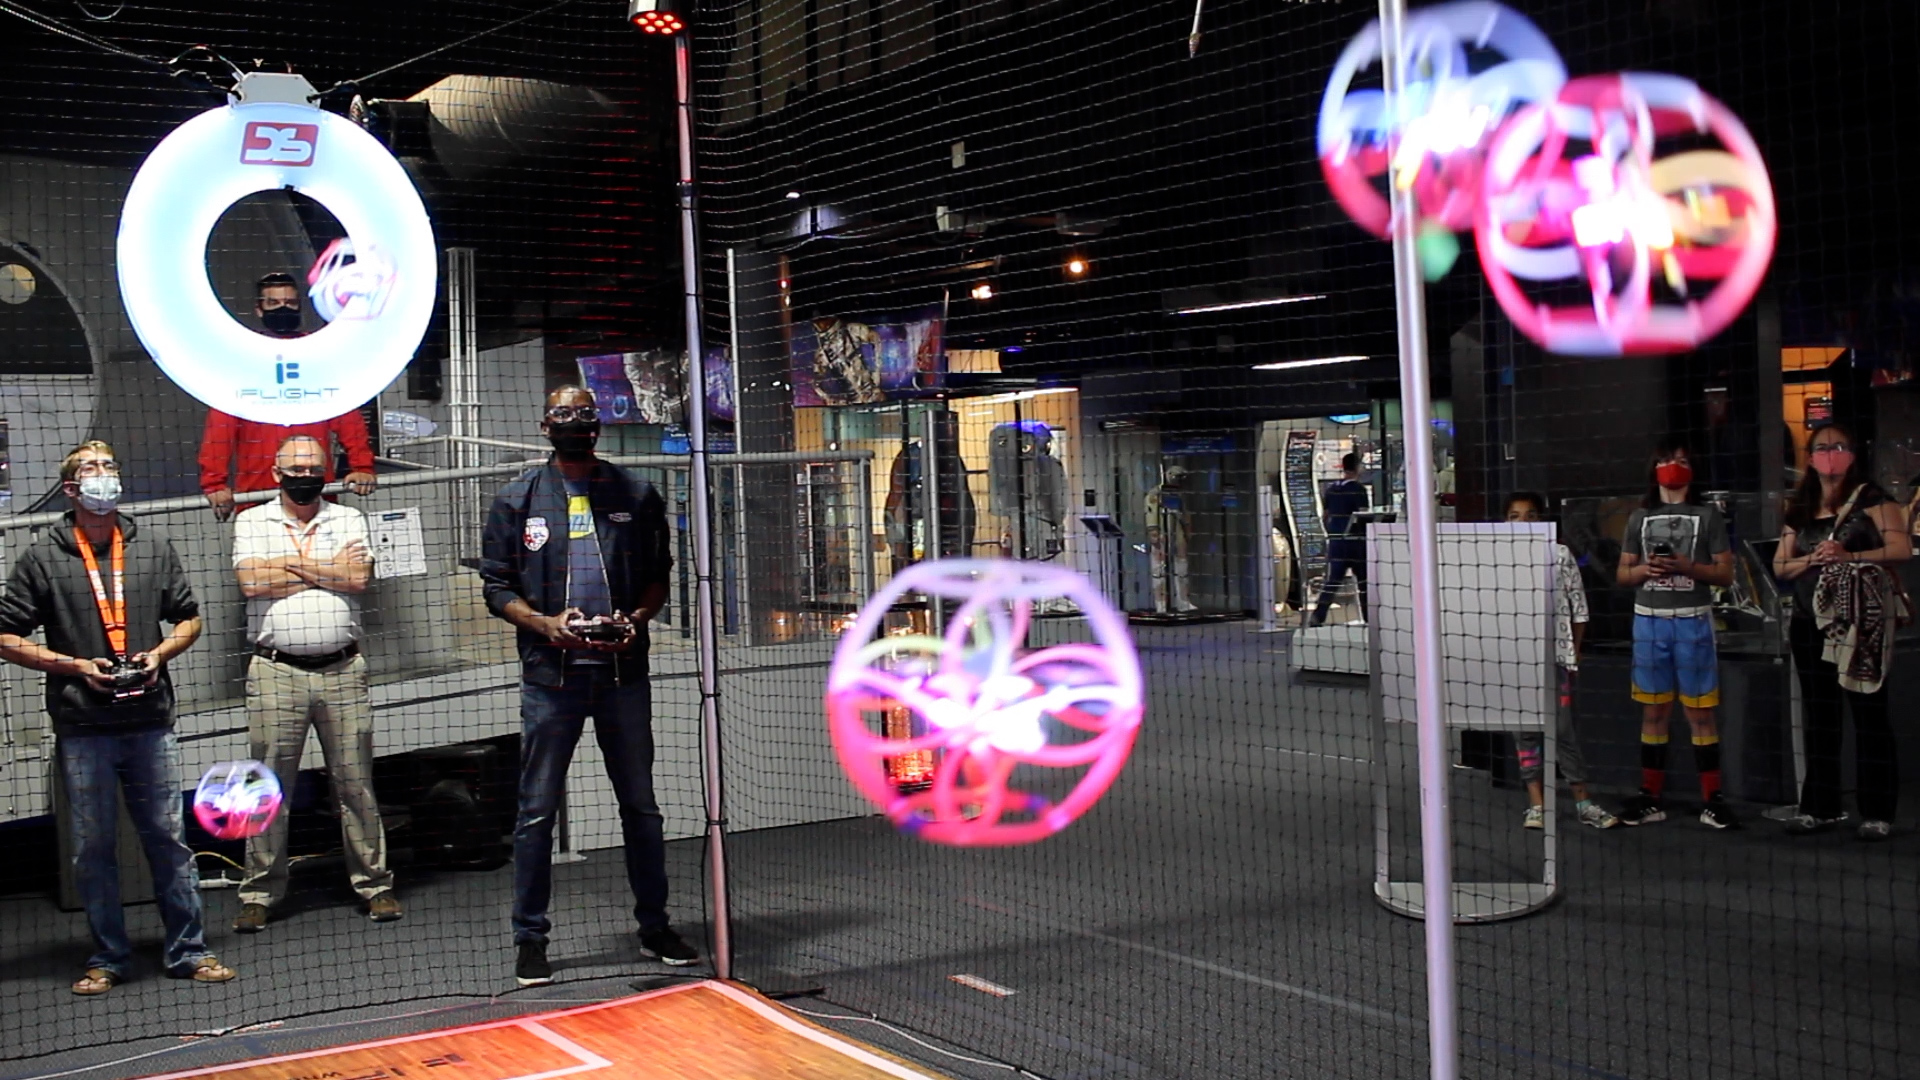 SPACE FOUNDATION GIVING VISITORS A CHANCE TO PLAY QUIDDITCH WITH DRONES